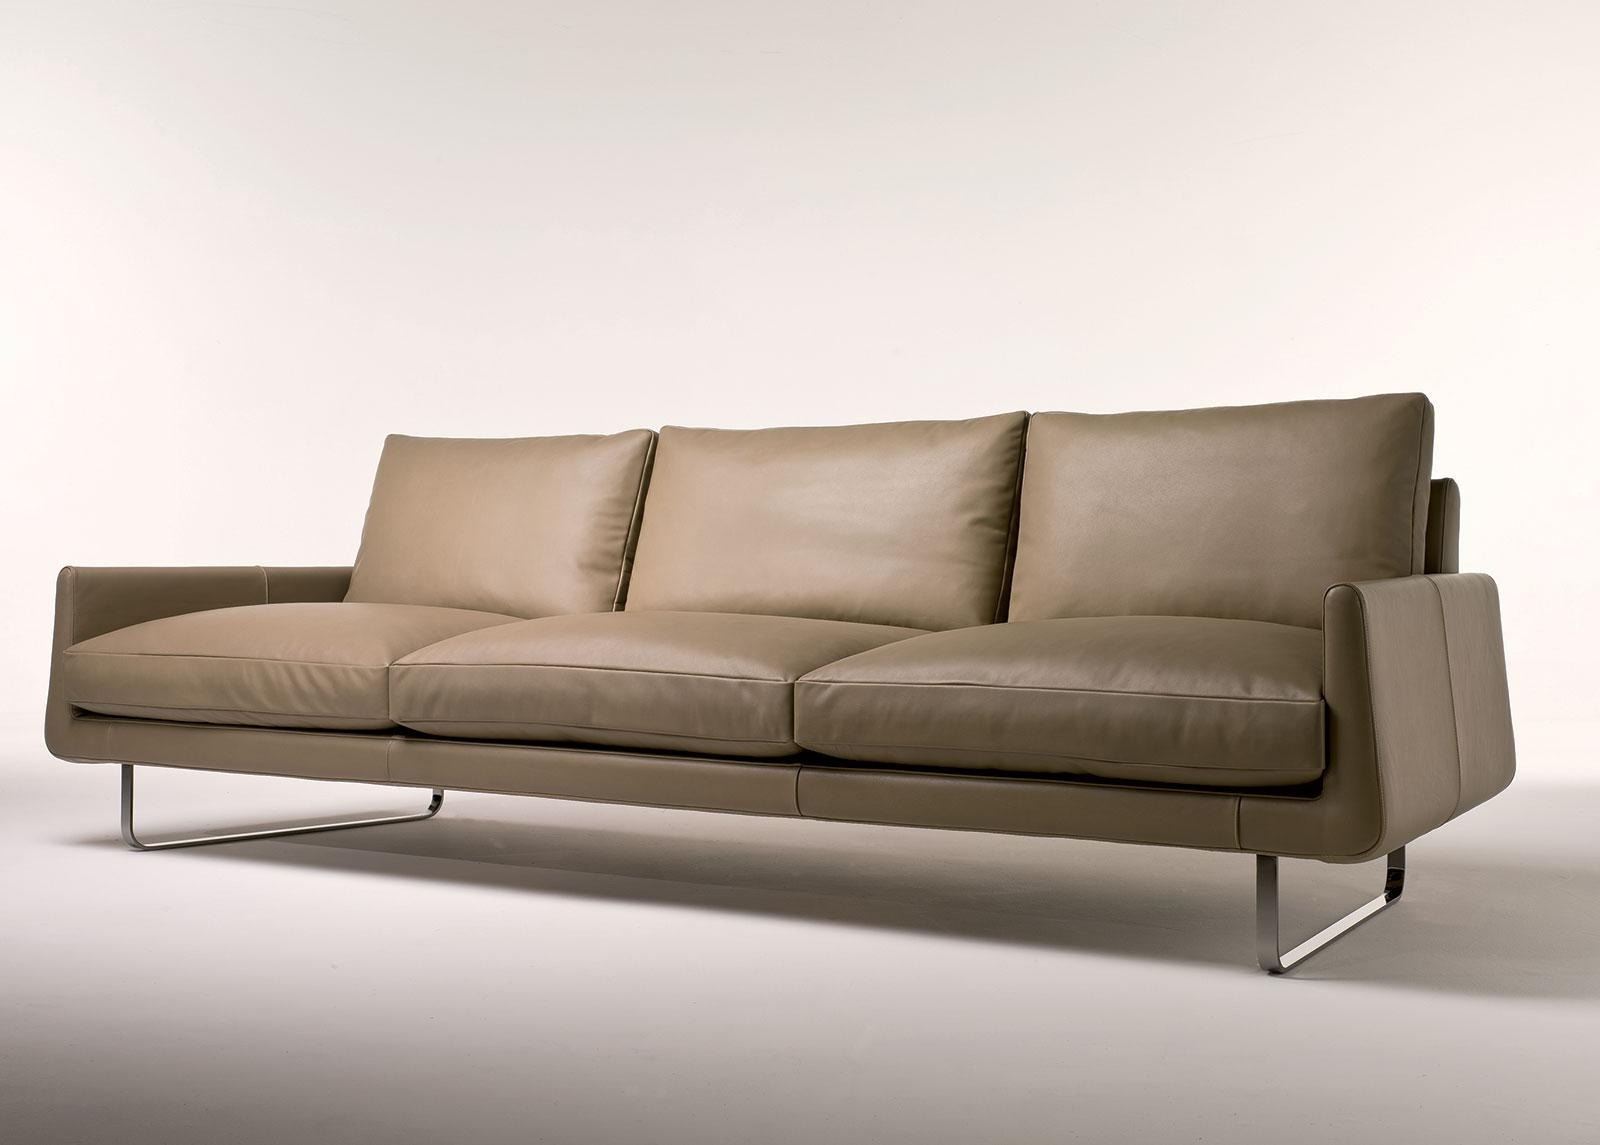 Shop Online – Italy Dream Design Inside 4 Seater Sofas (View 10 of 15)